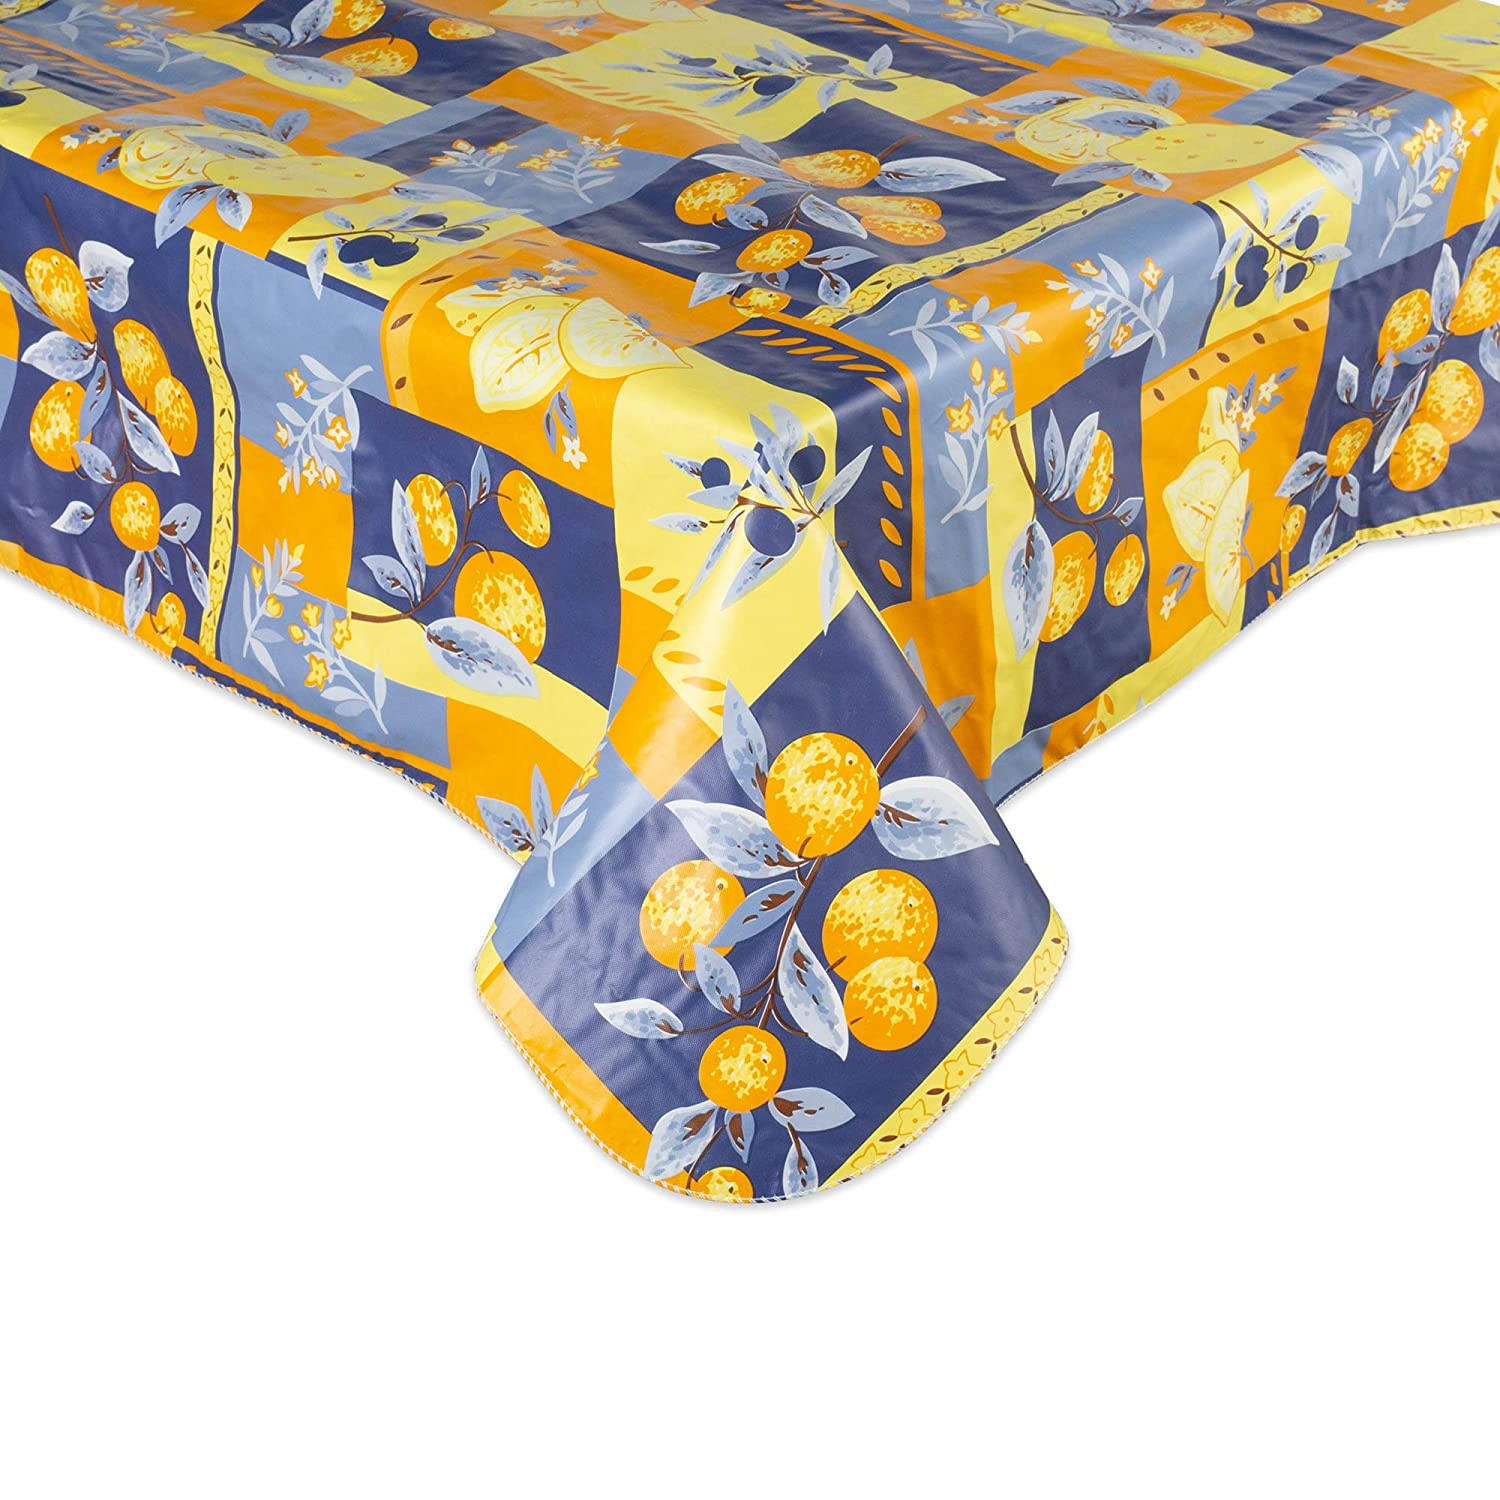 J&M Home Fashions Waterproof Spill Proof Vinyl Printed Tablecloth, 52x90, Season, Indoor, Outdoor Picnics & Potlucks Party Party or Everyday Use-Lemons